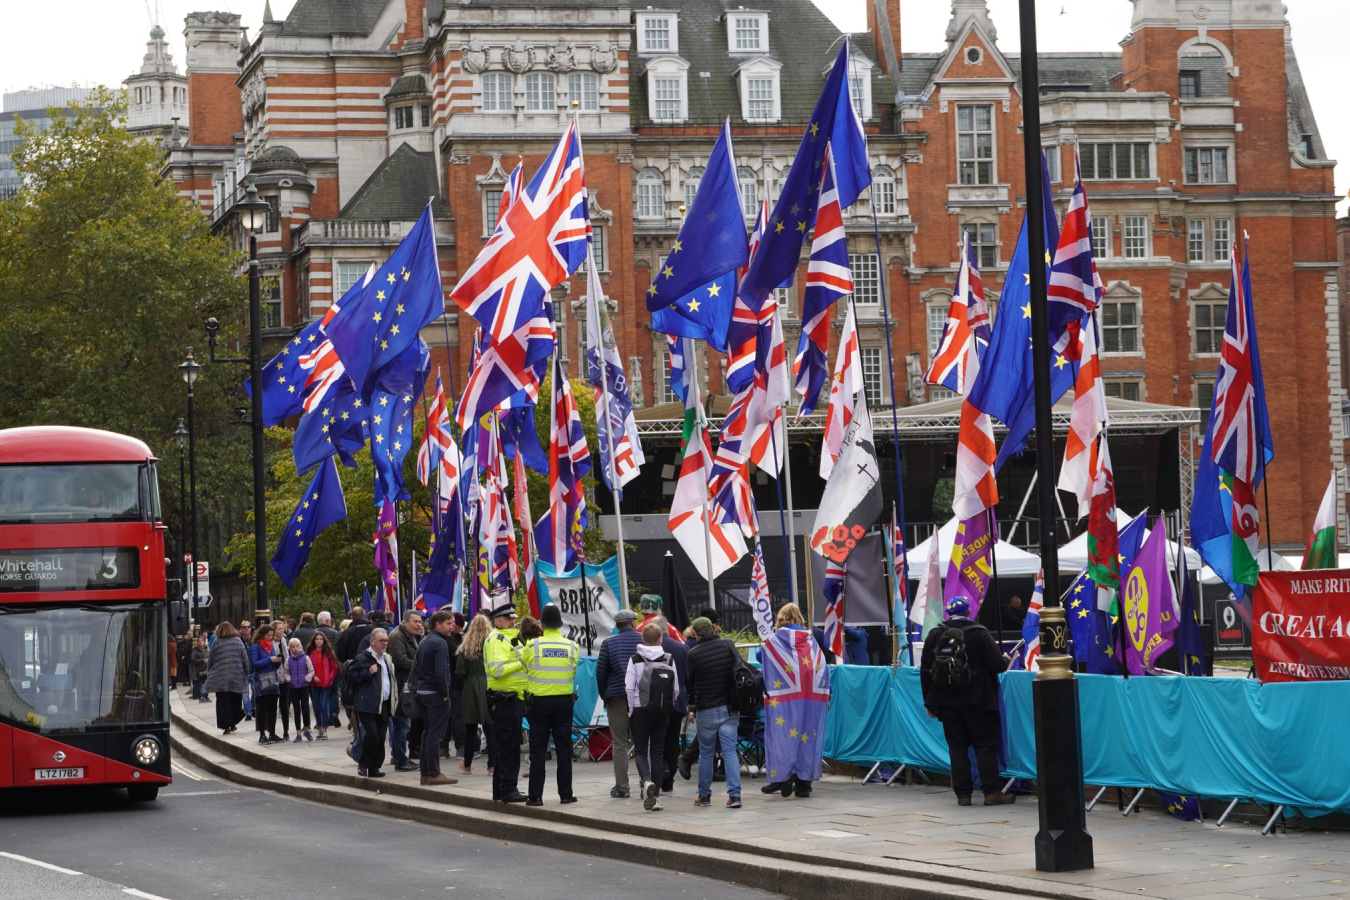 UK Parliament Square October 2019